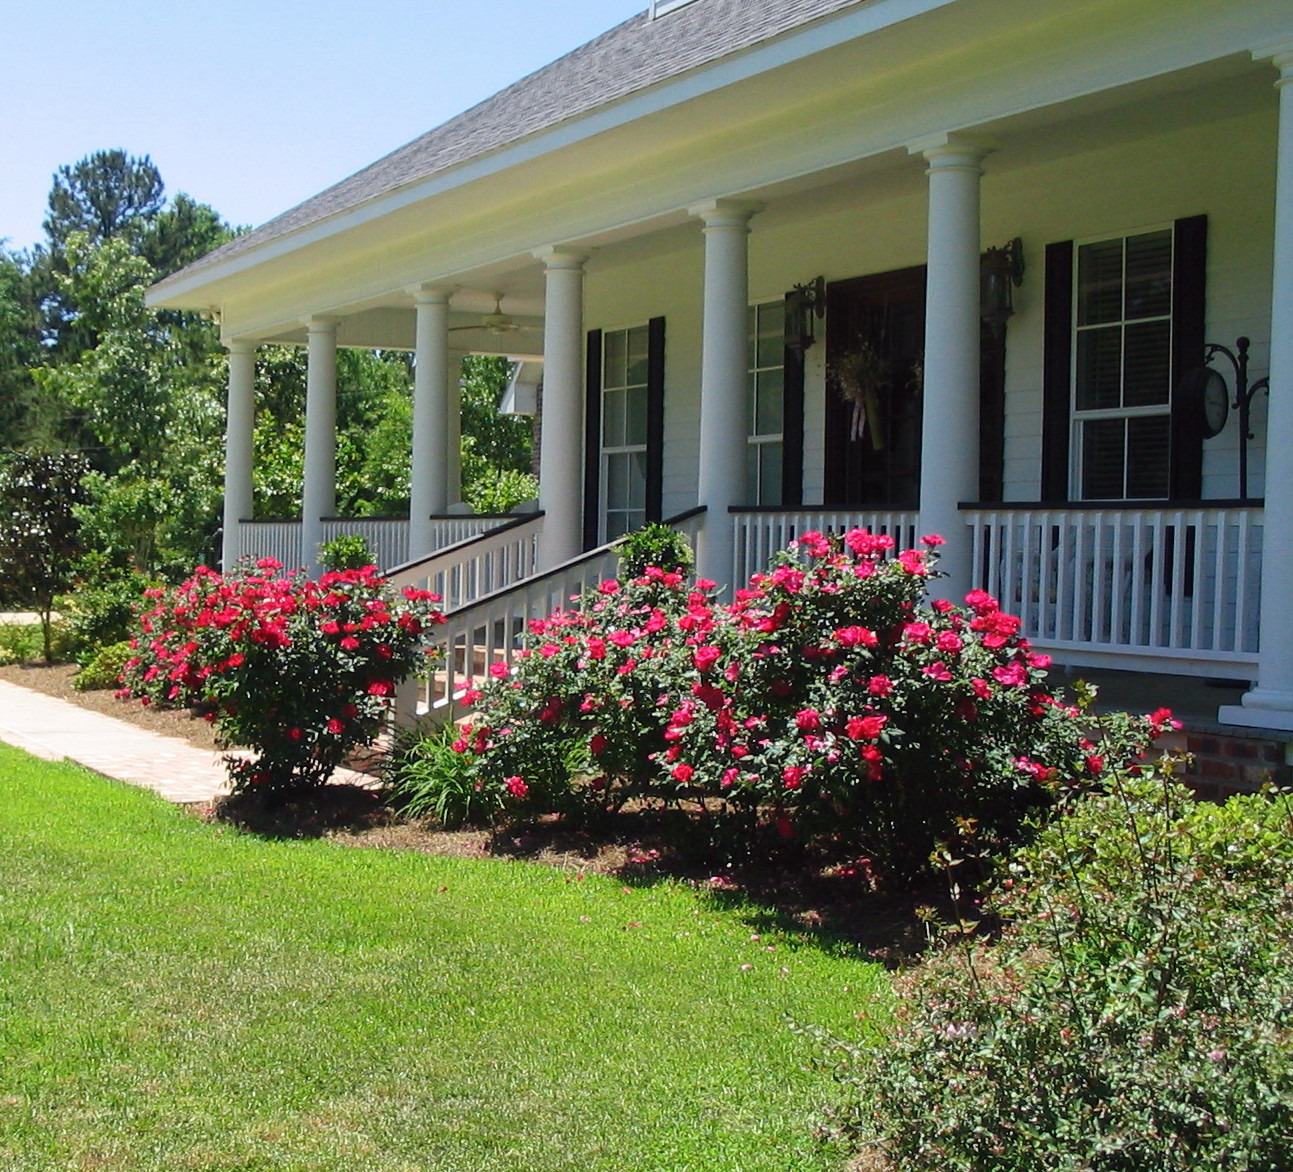 A Southern Belle Dishes On Decor: My Life On The Front Porch